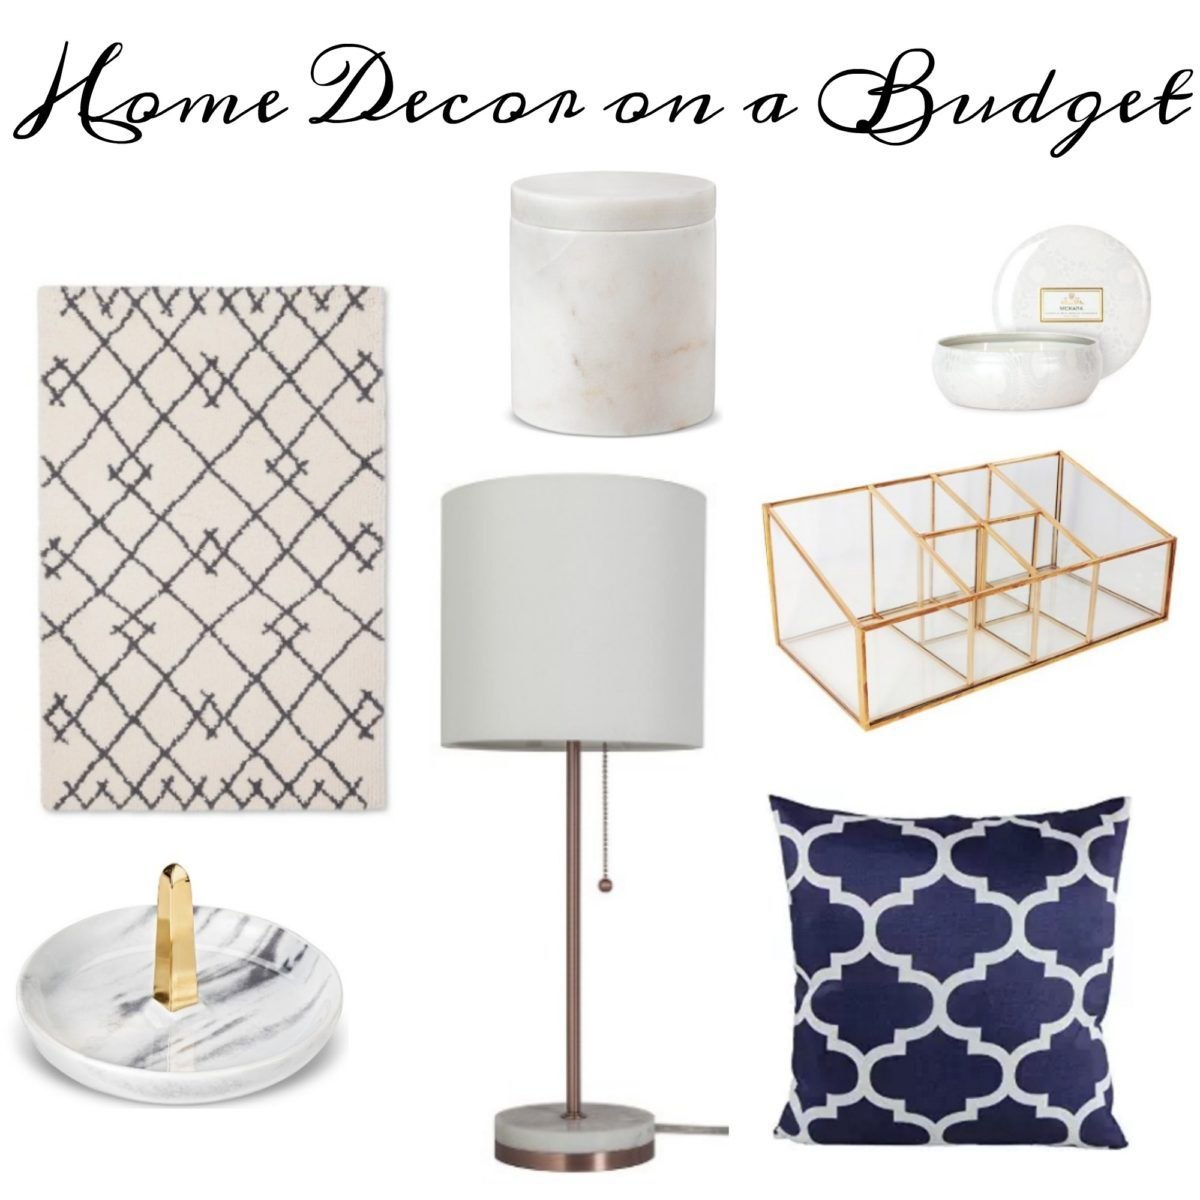 25 Budget Home Improvement Ideas | Budgeting, Decorating and Reuse